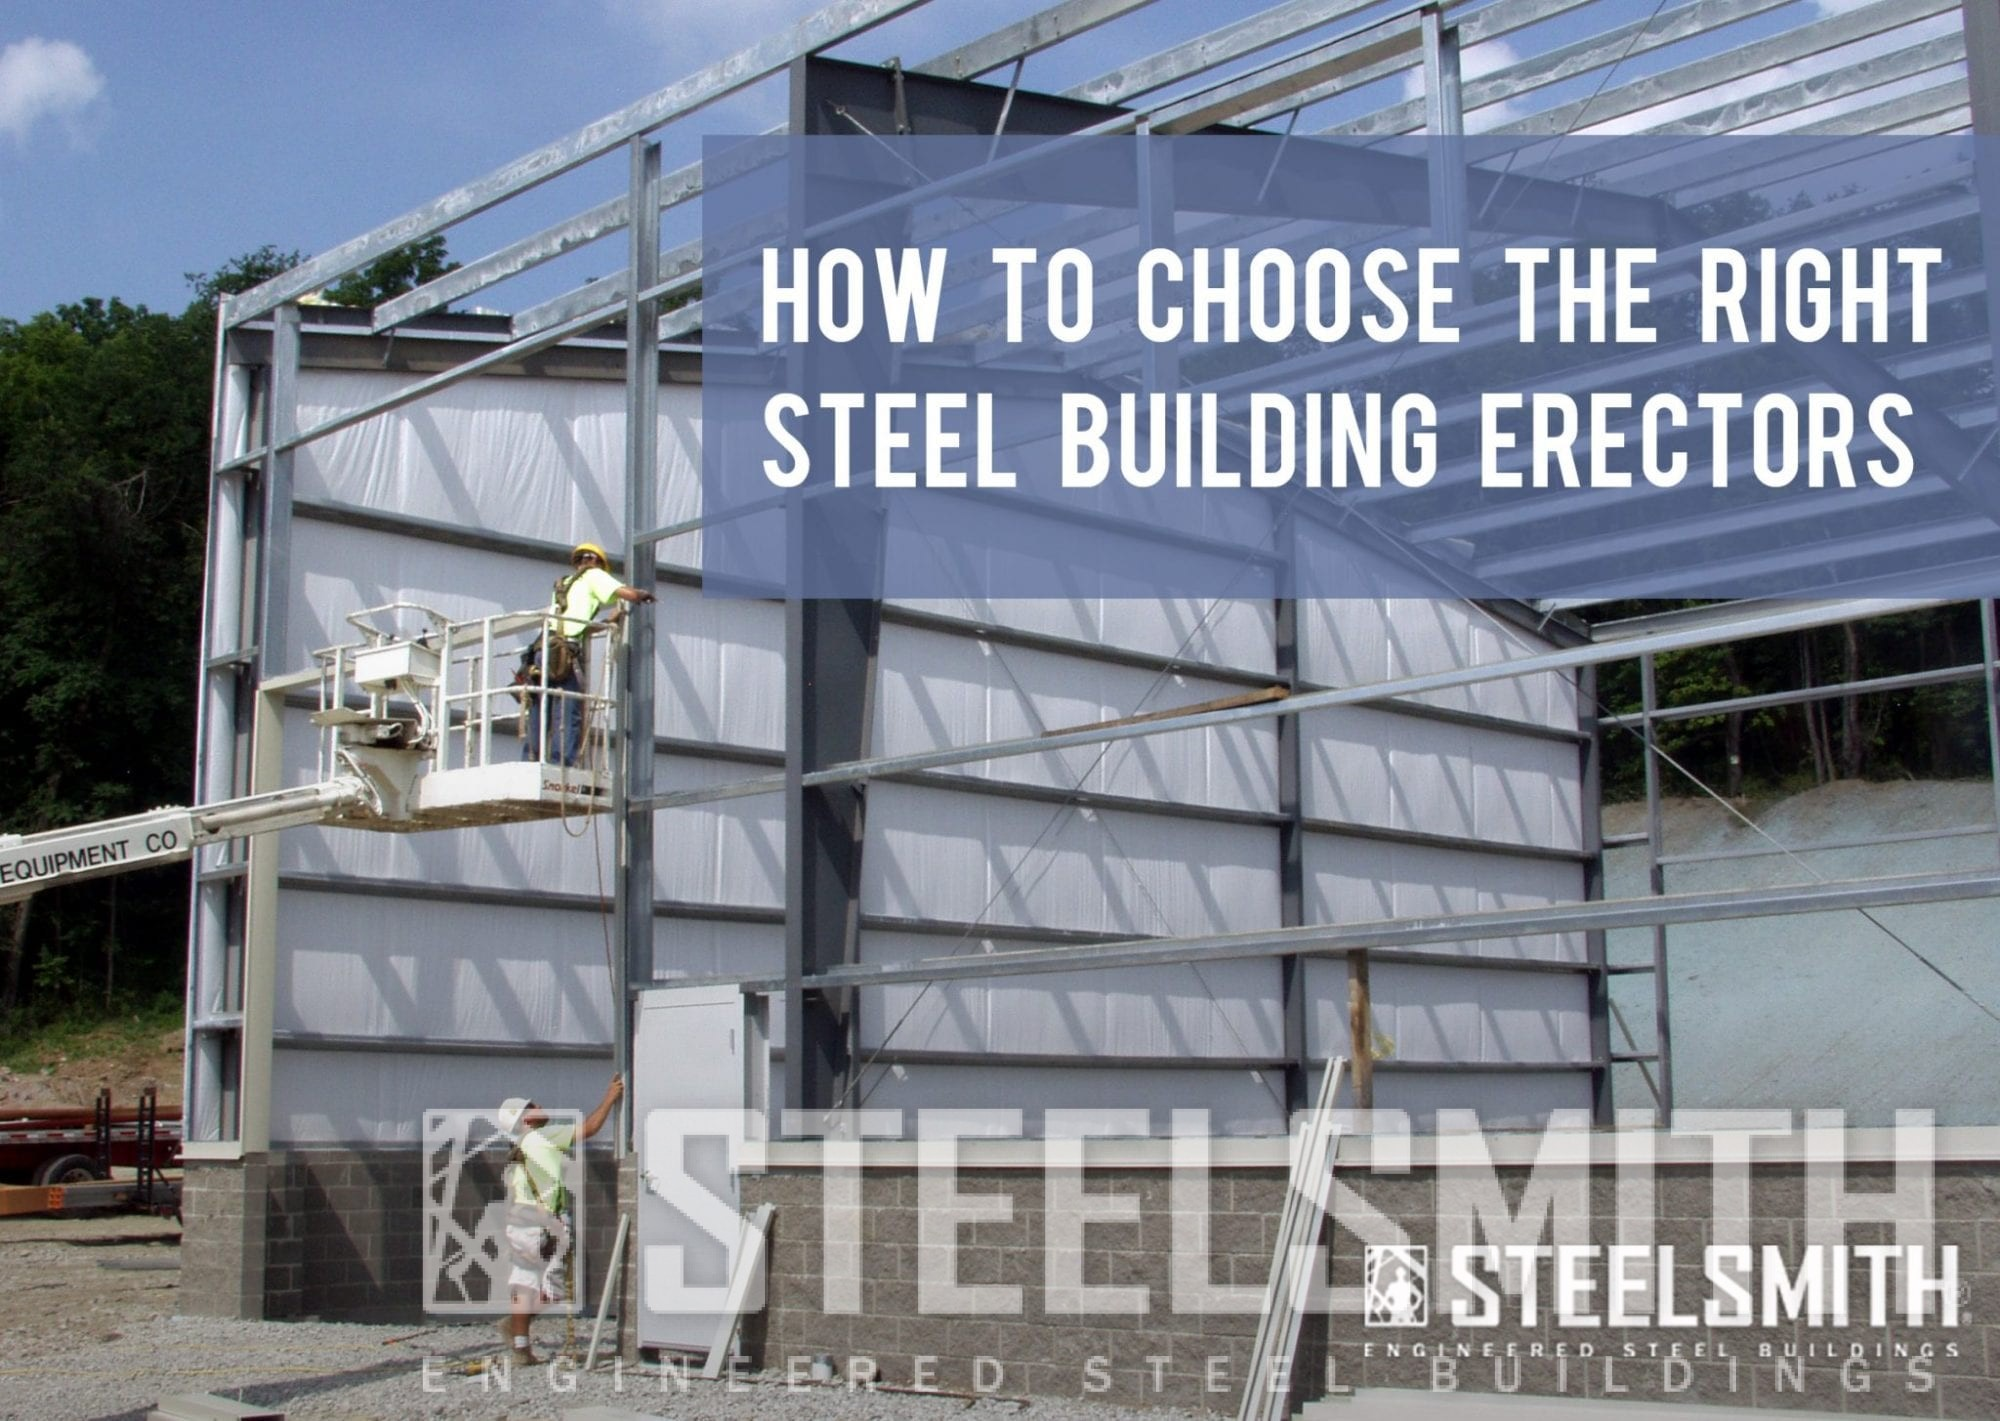 steel building erectors